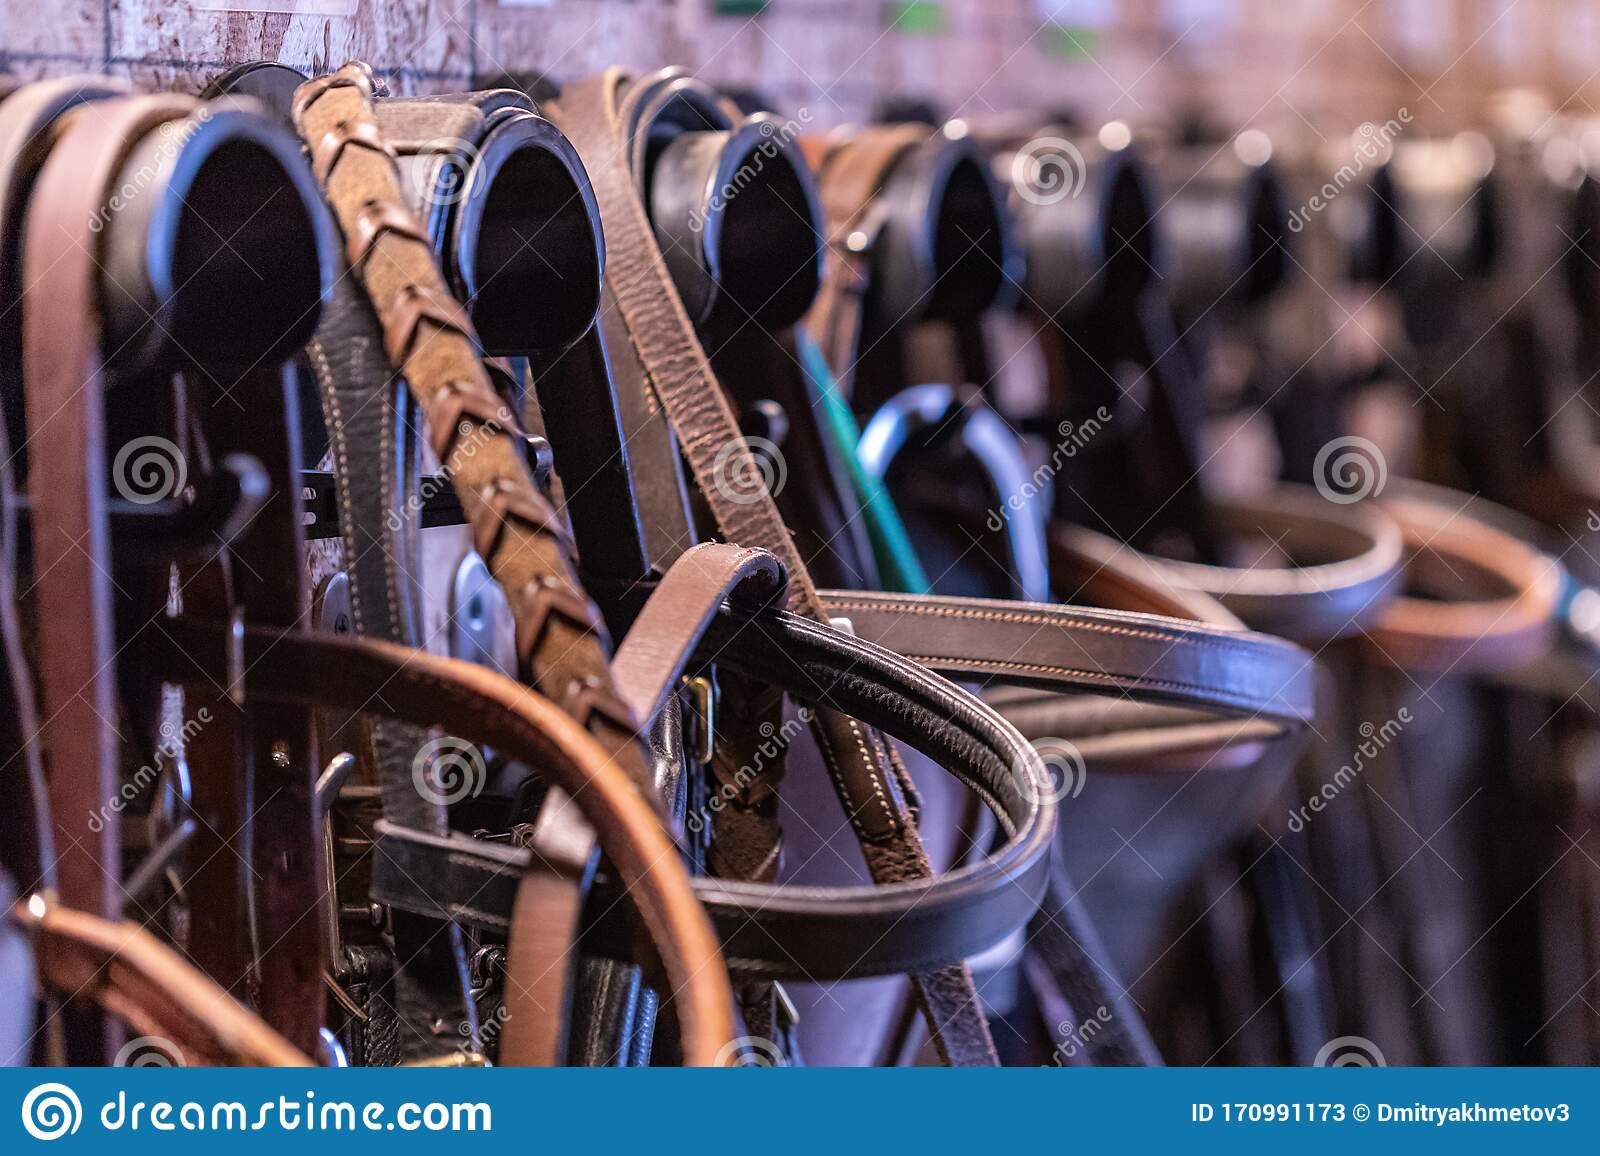 315 Tack Room Photos Free Royalty Free Stock Photos From Dreamstime